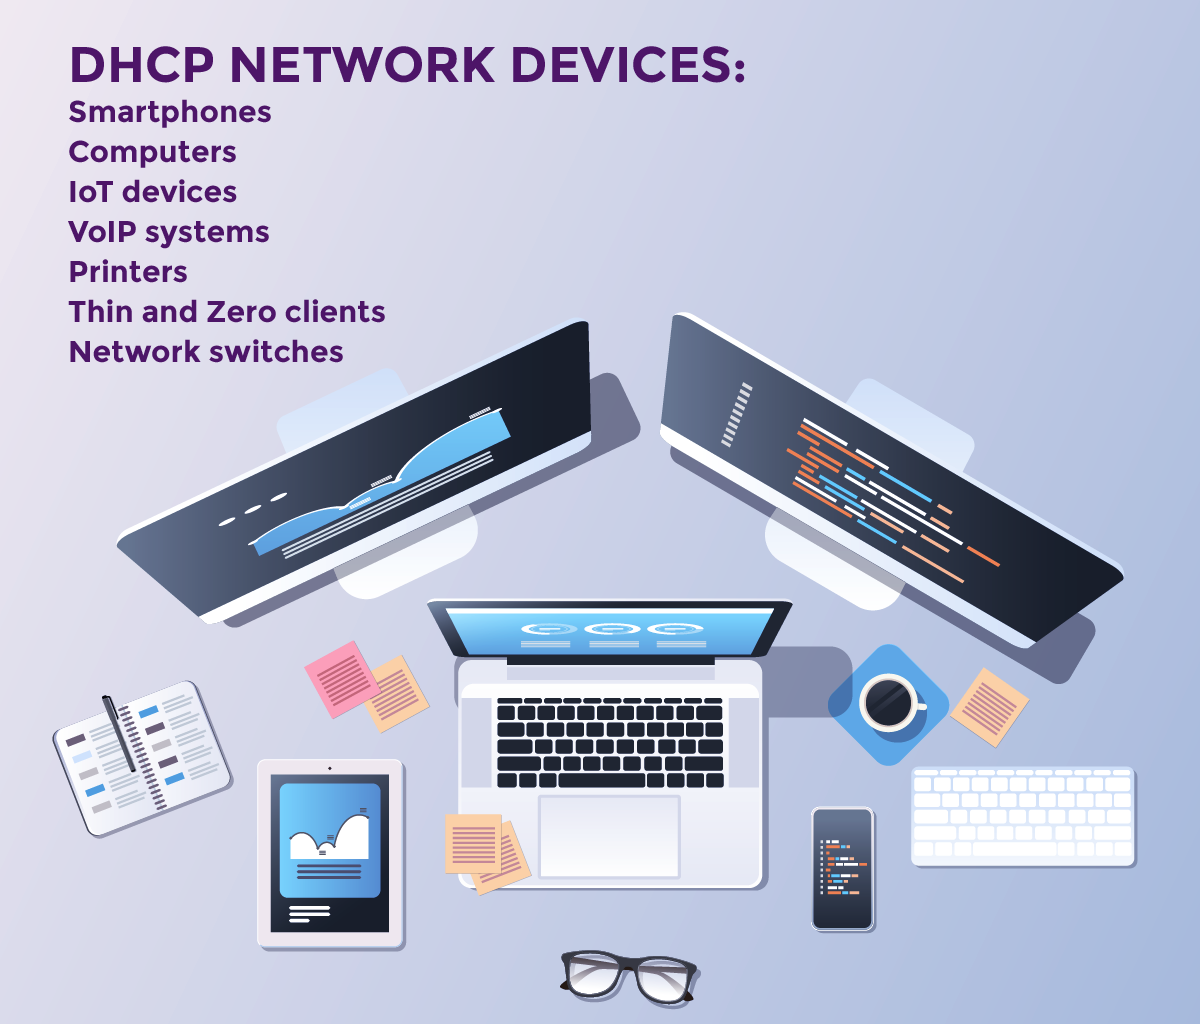 DHCP Network Devices - Smartphones, Computers, IoT devices, VoIP systems, Printers